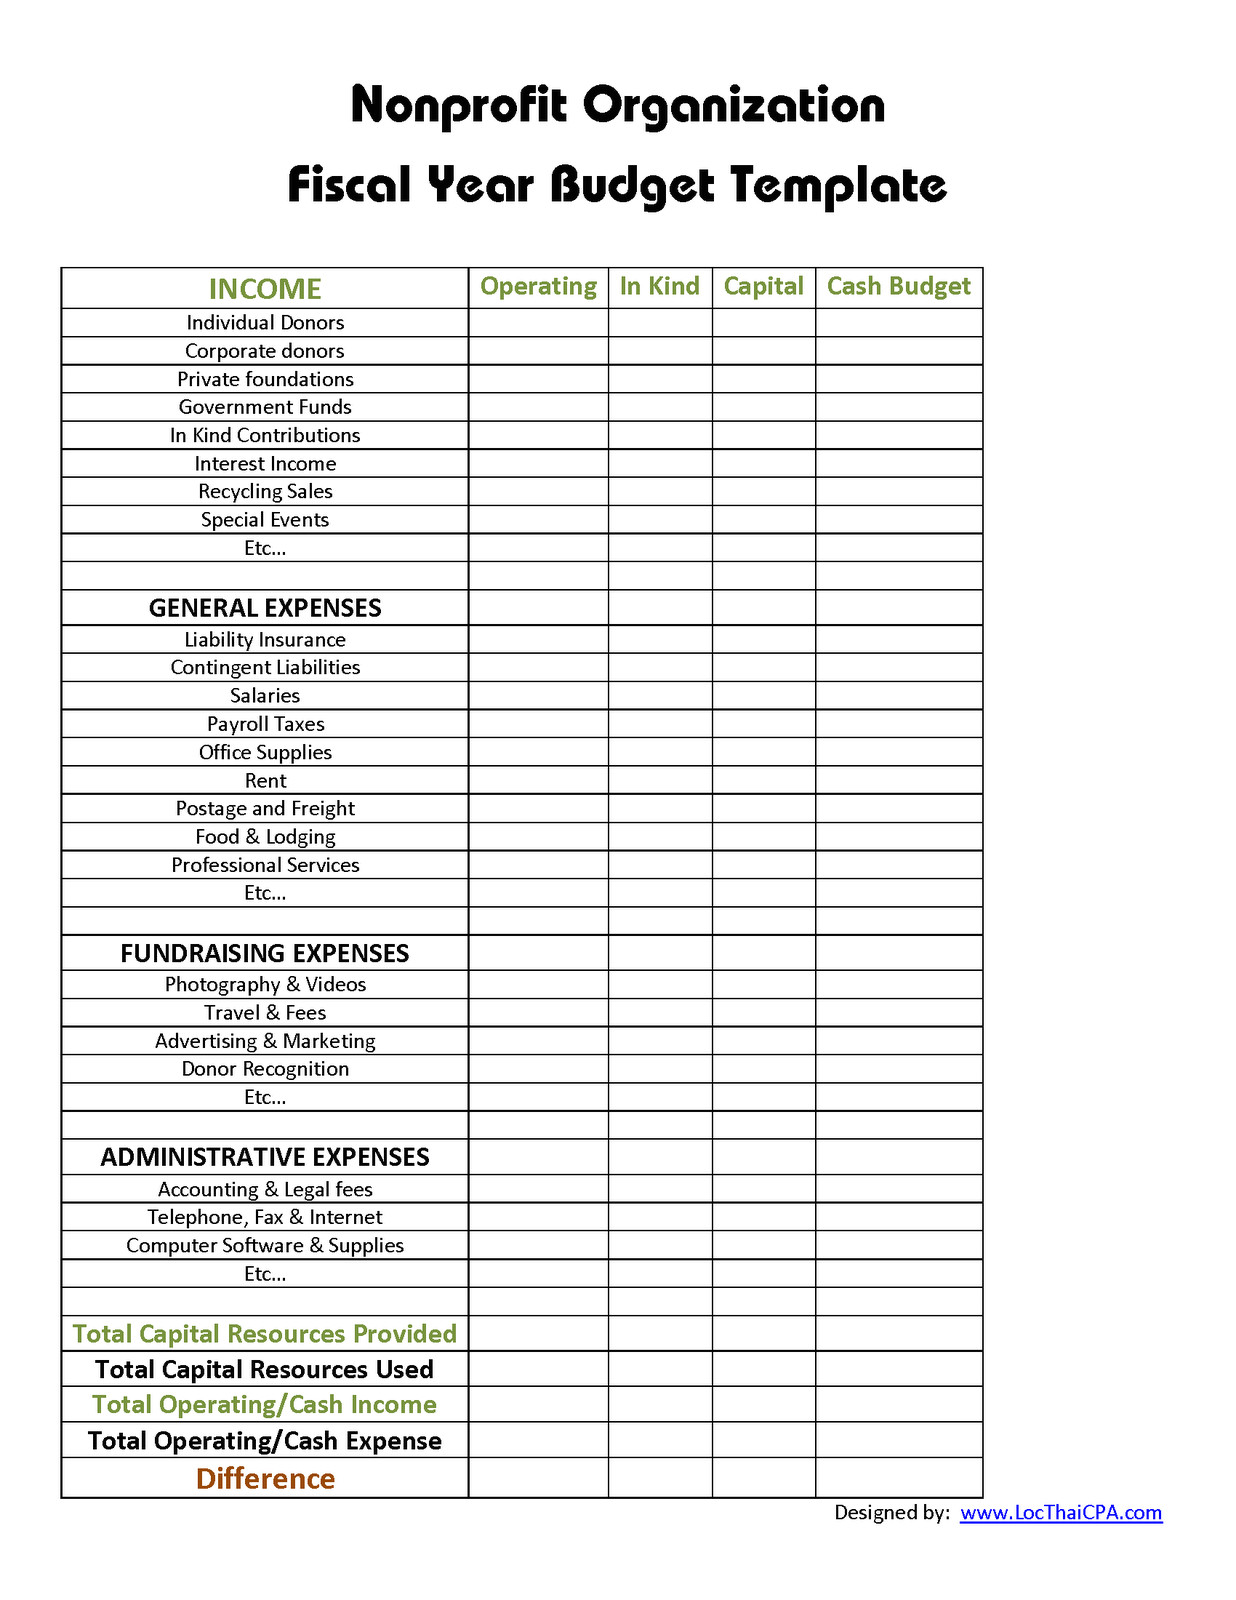 Organizational Budget Template Loc Thai Cpa Pc Nonprofit organization Fiscal Year